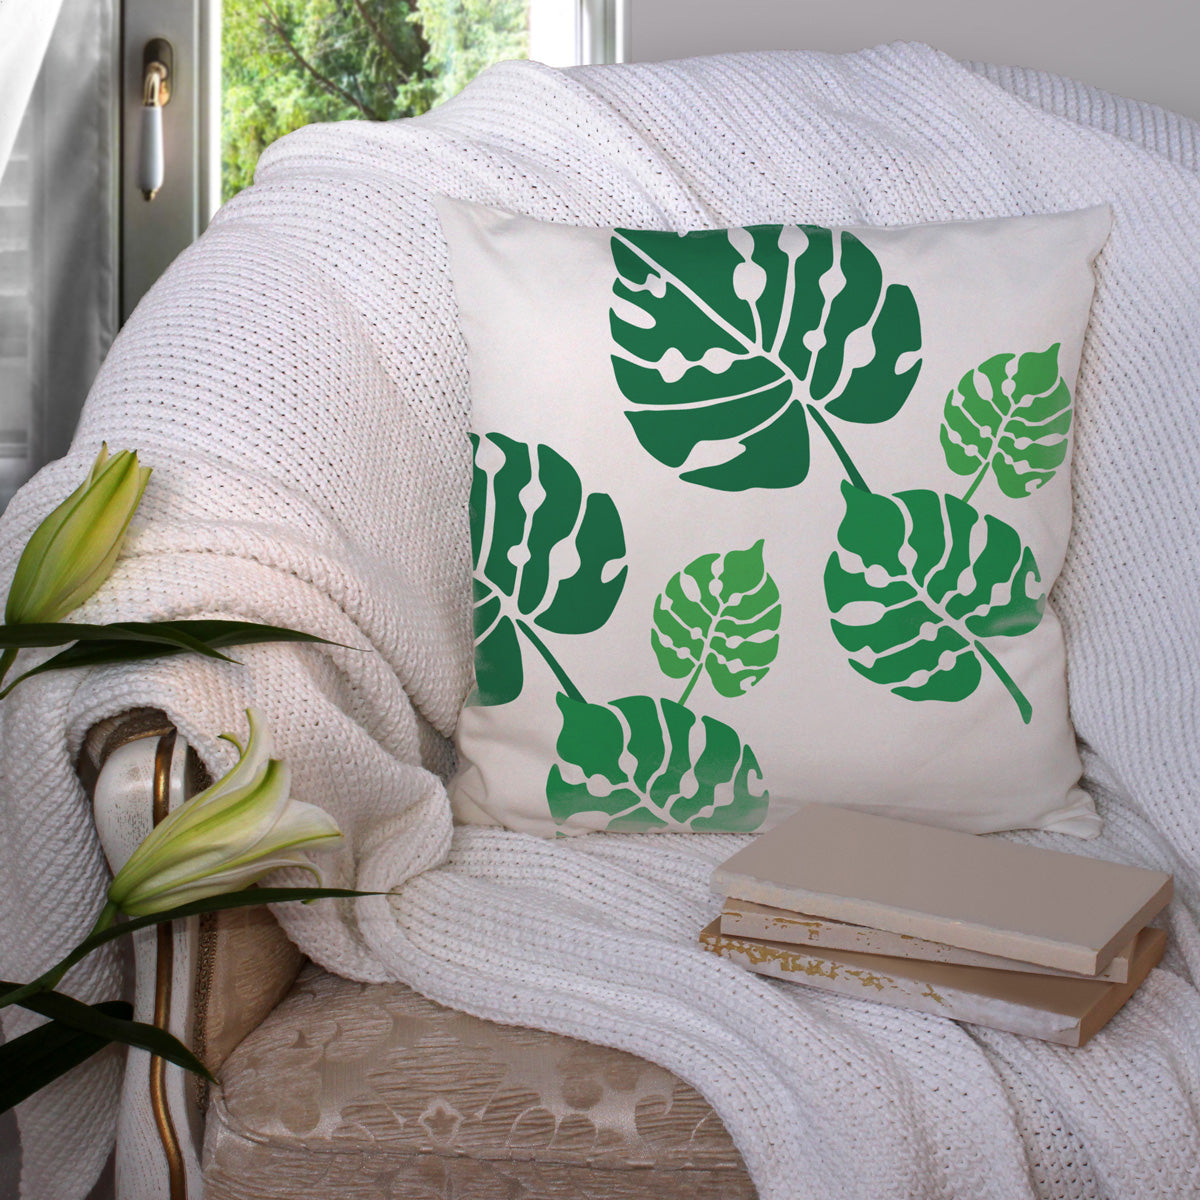 CraftStar Large Monstera Leaf Stencil Set on fabric